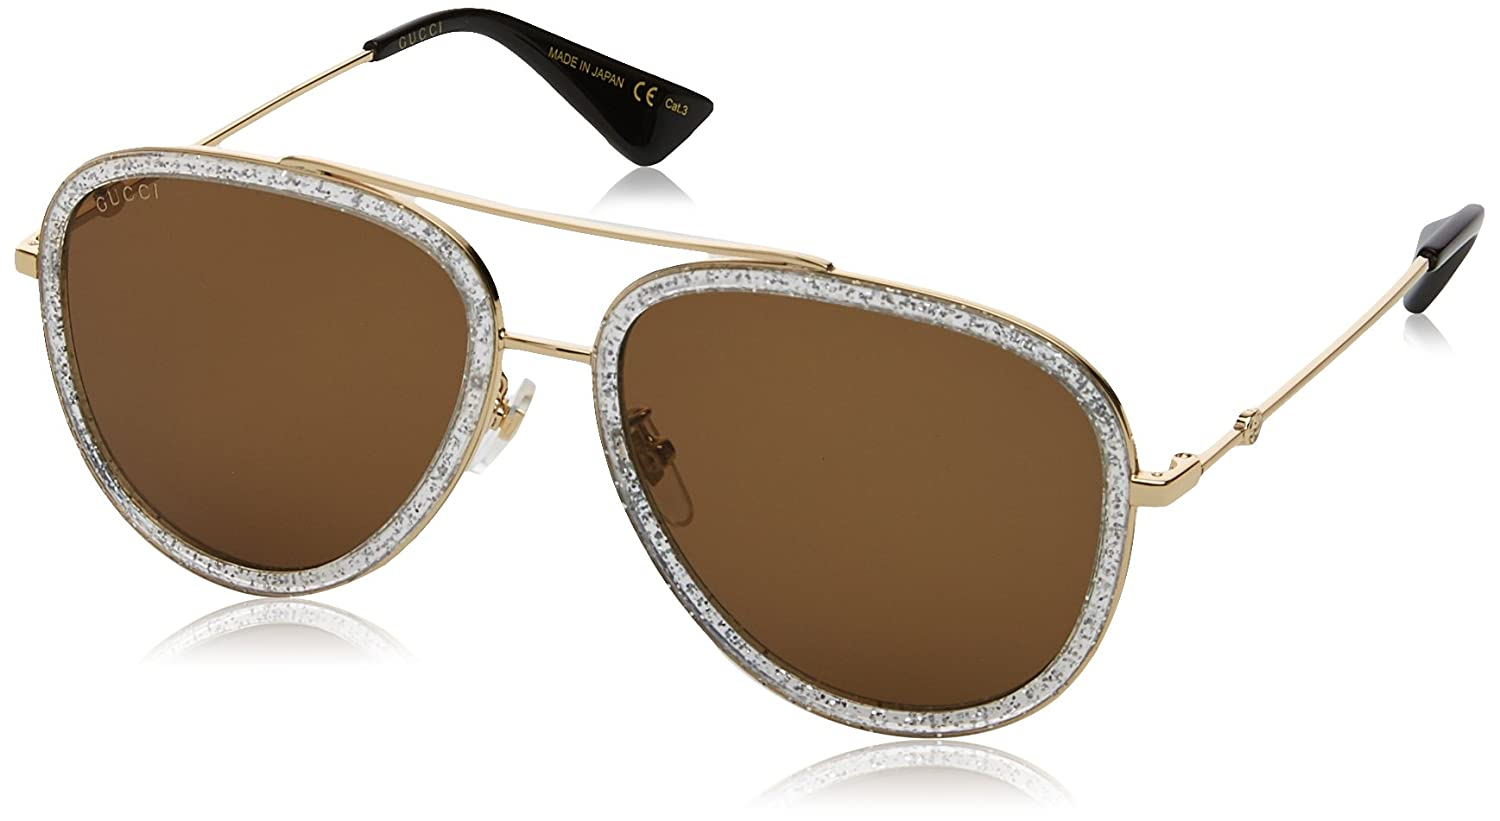 Amazon.com: Gucci GG0062S - Gafas de sol (2.244 in): Gucci ...